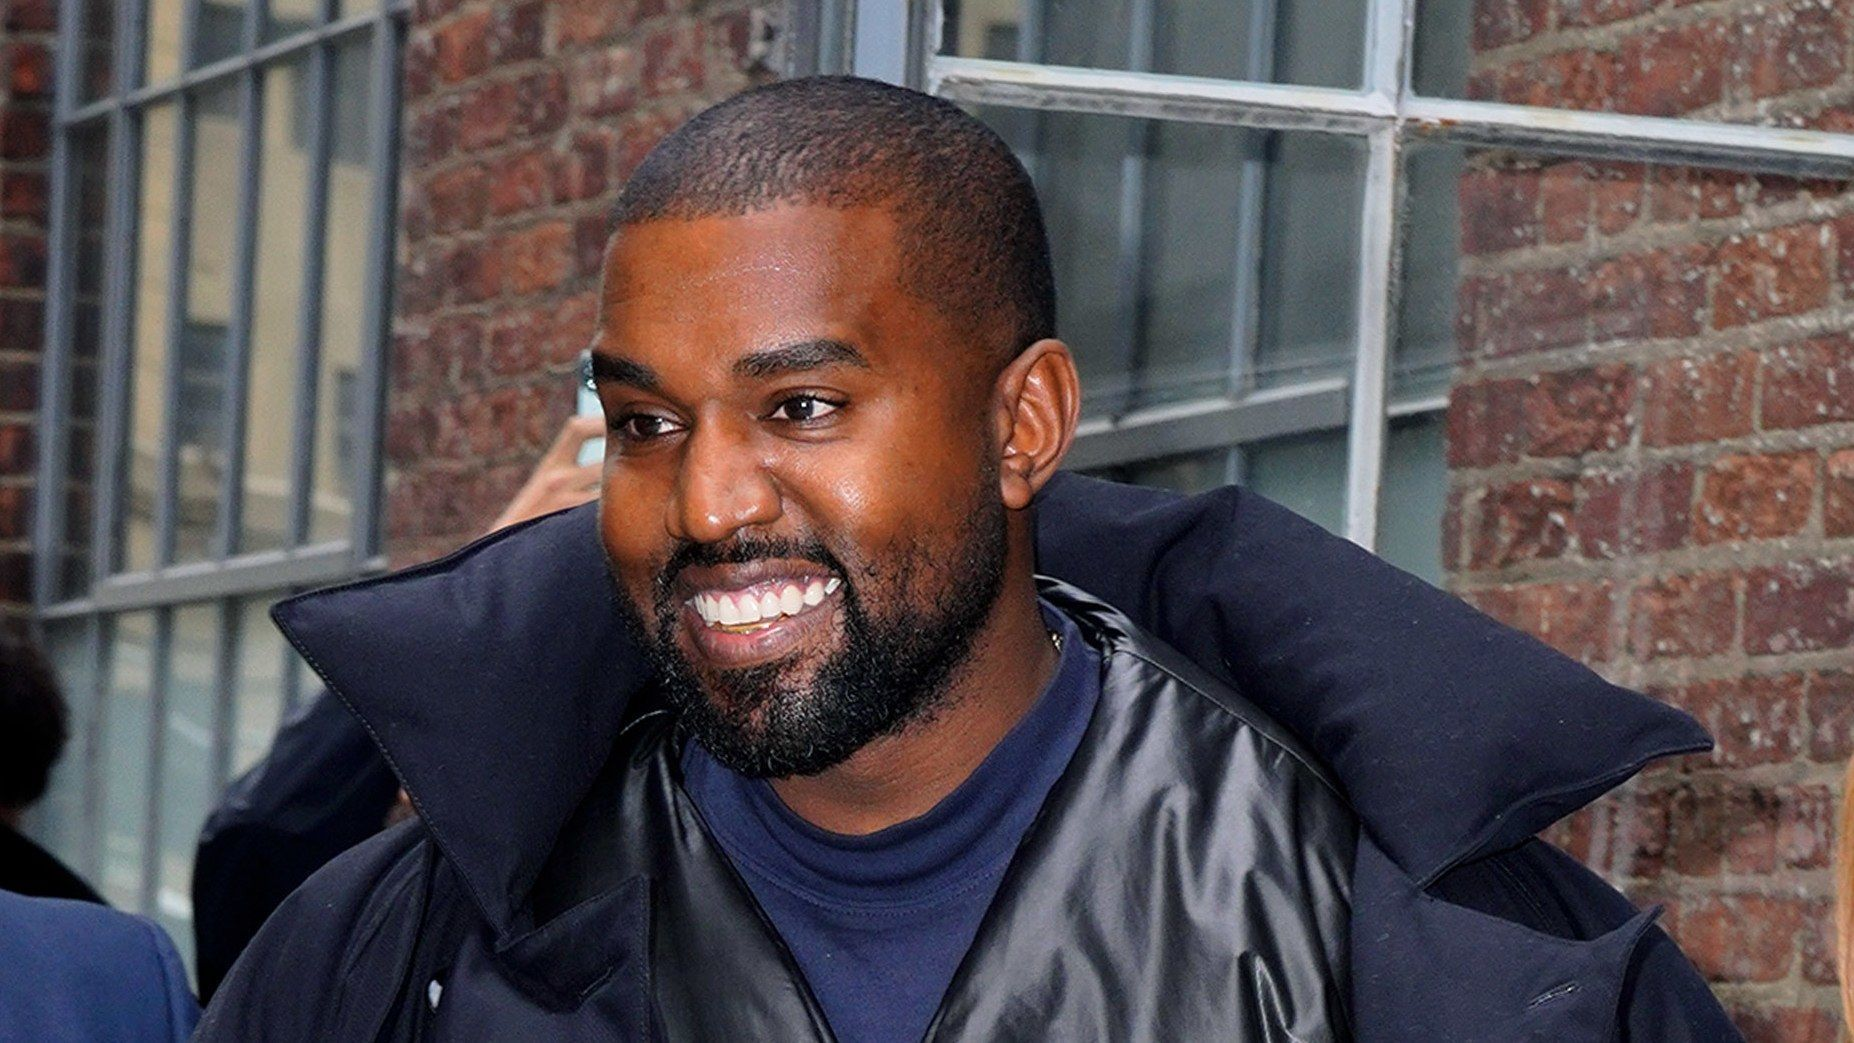 Kanye West Buys A Second Wyoming Ranch For 14 495 Million Wyoming Casper Wyoming Dubois Wyoming Moving In 2020 Kanye West Kanye West And Kim Kanye